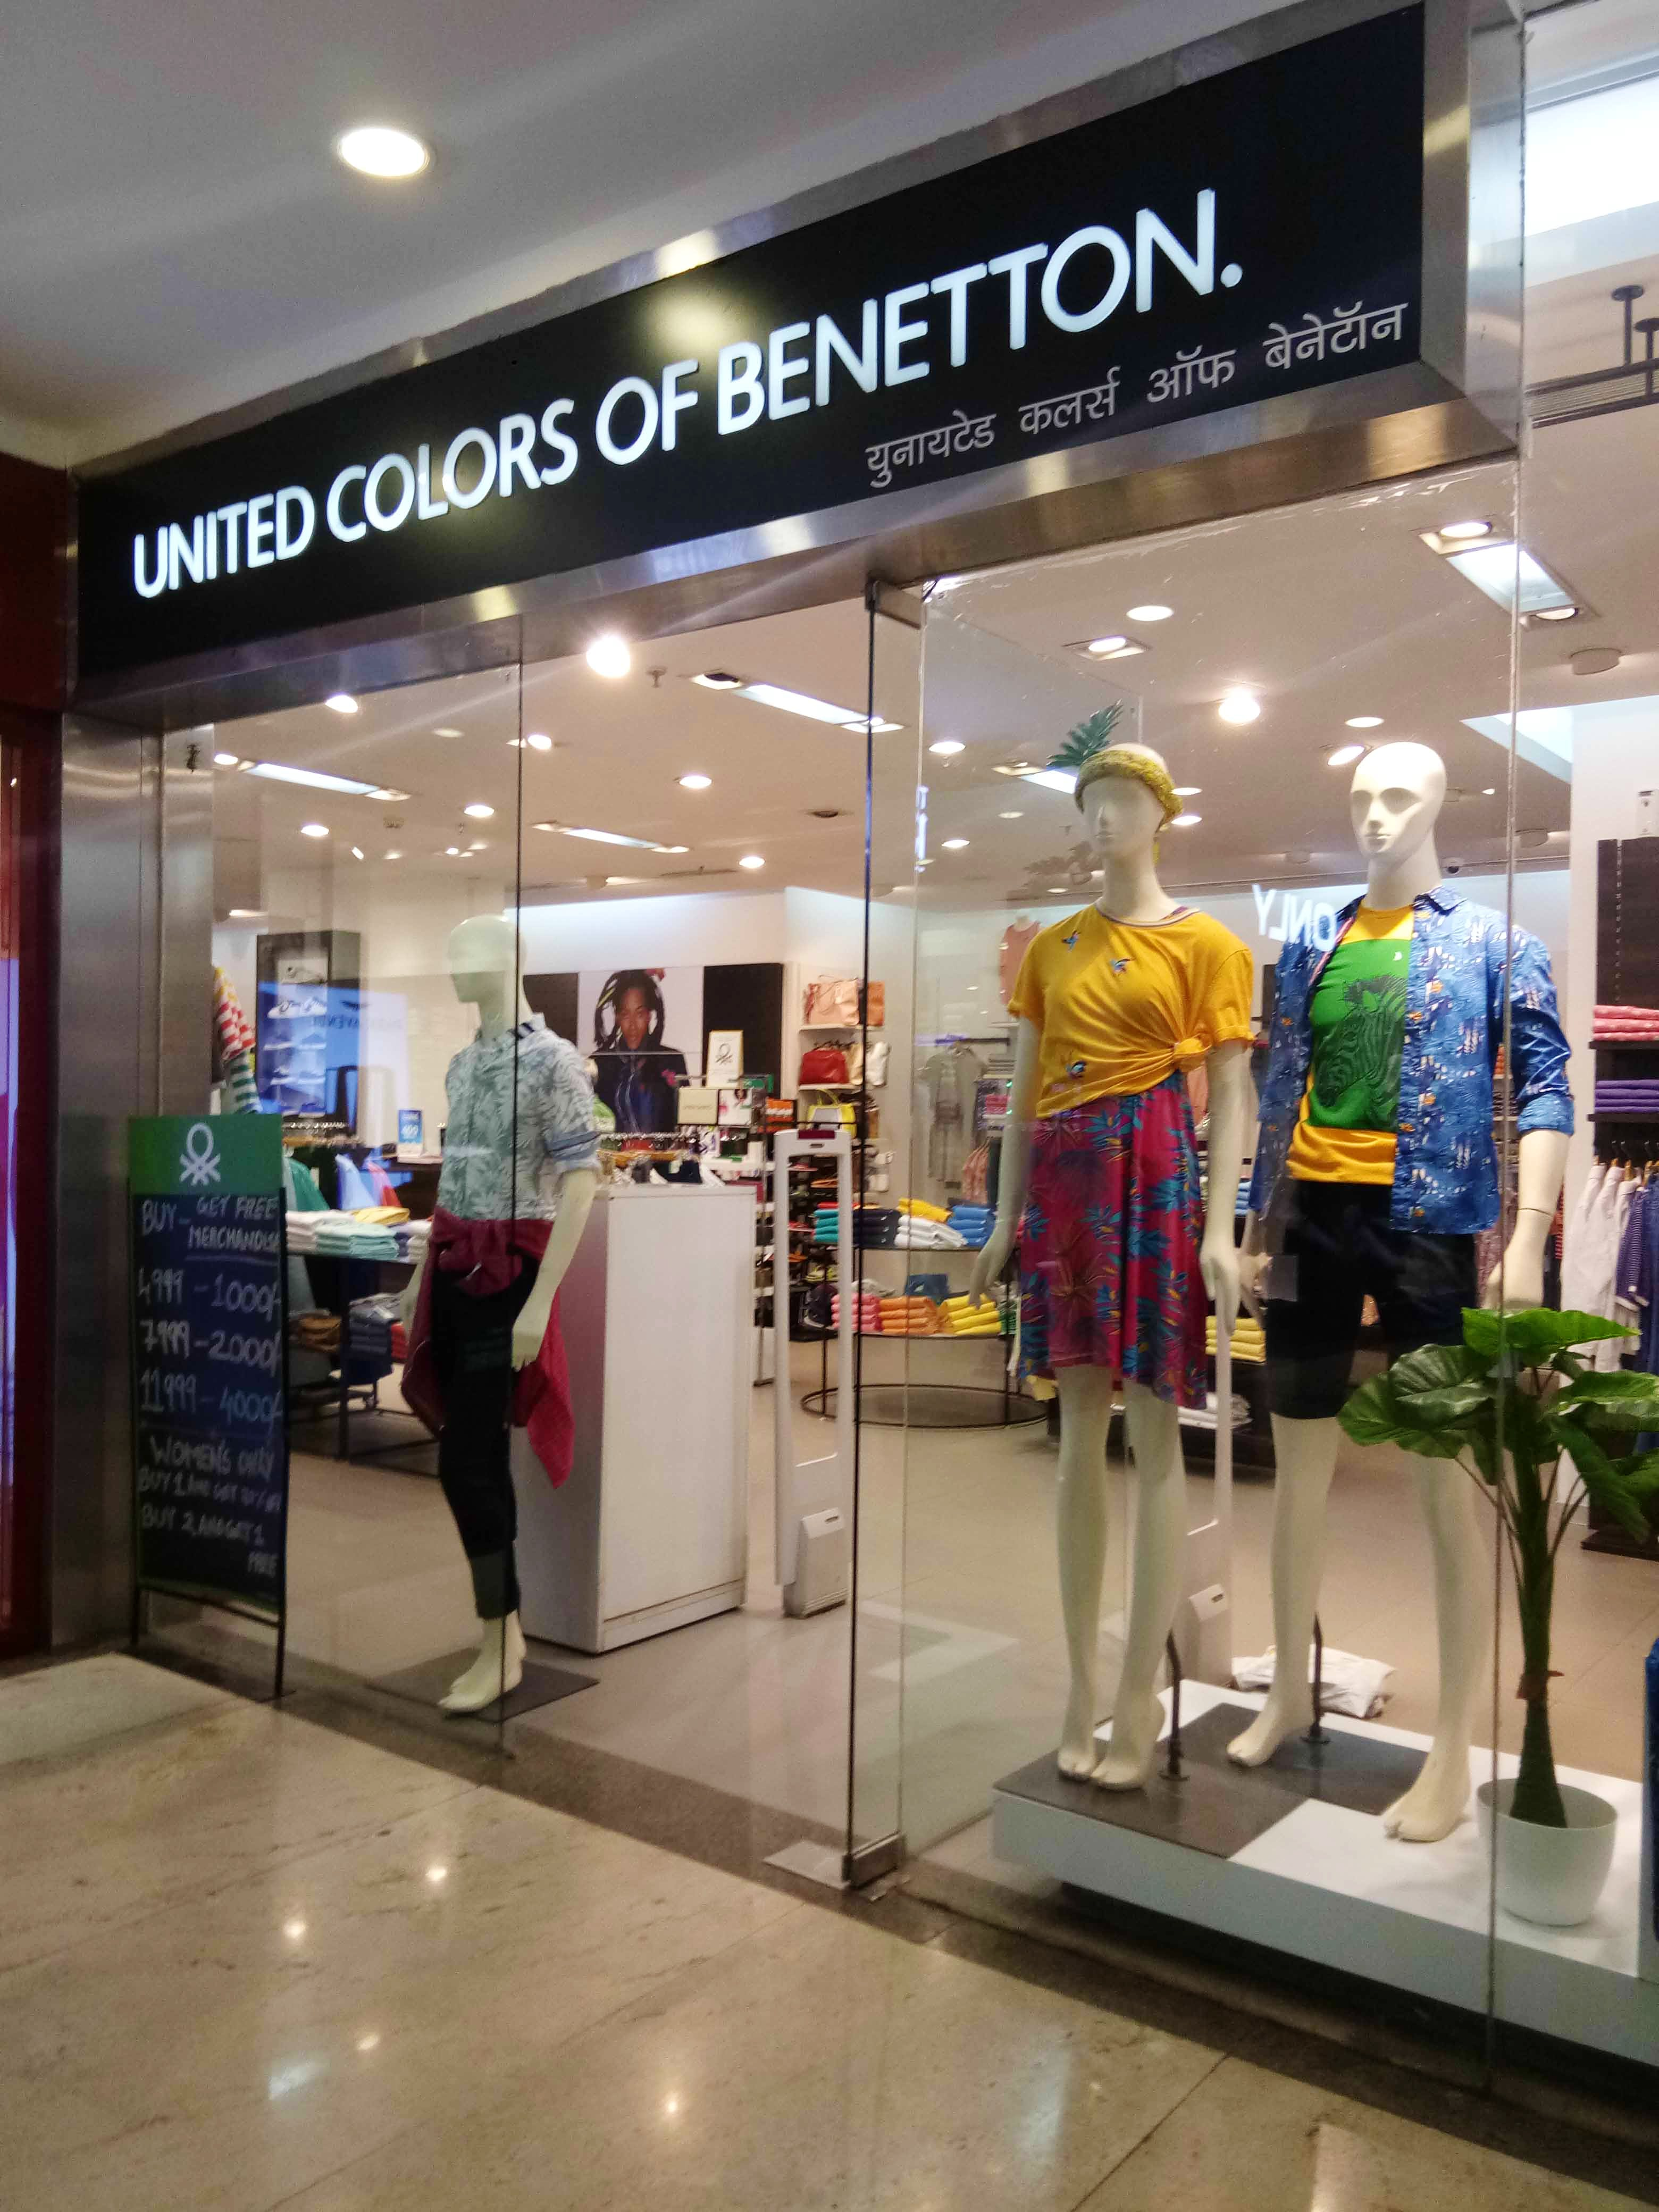 Outlet store,Shopping mall,Building,Boutique,Retail,Display window,Interior design,Trade,Shopping